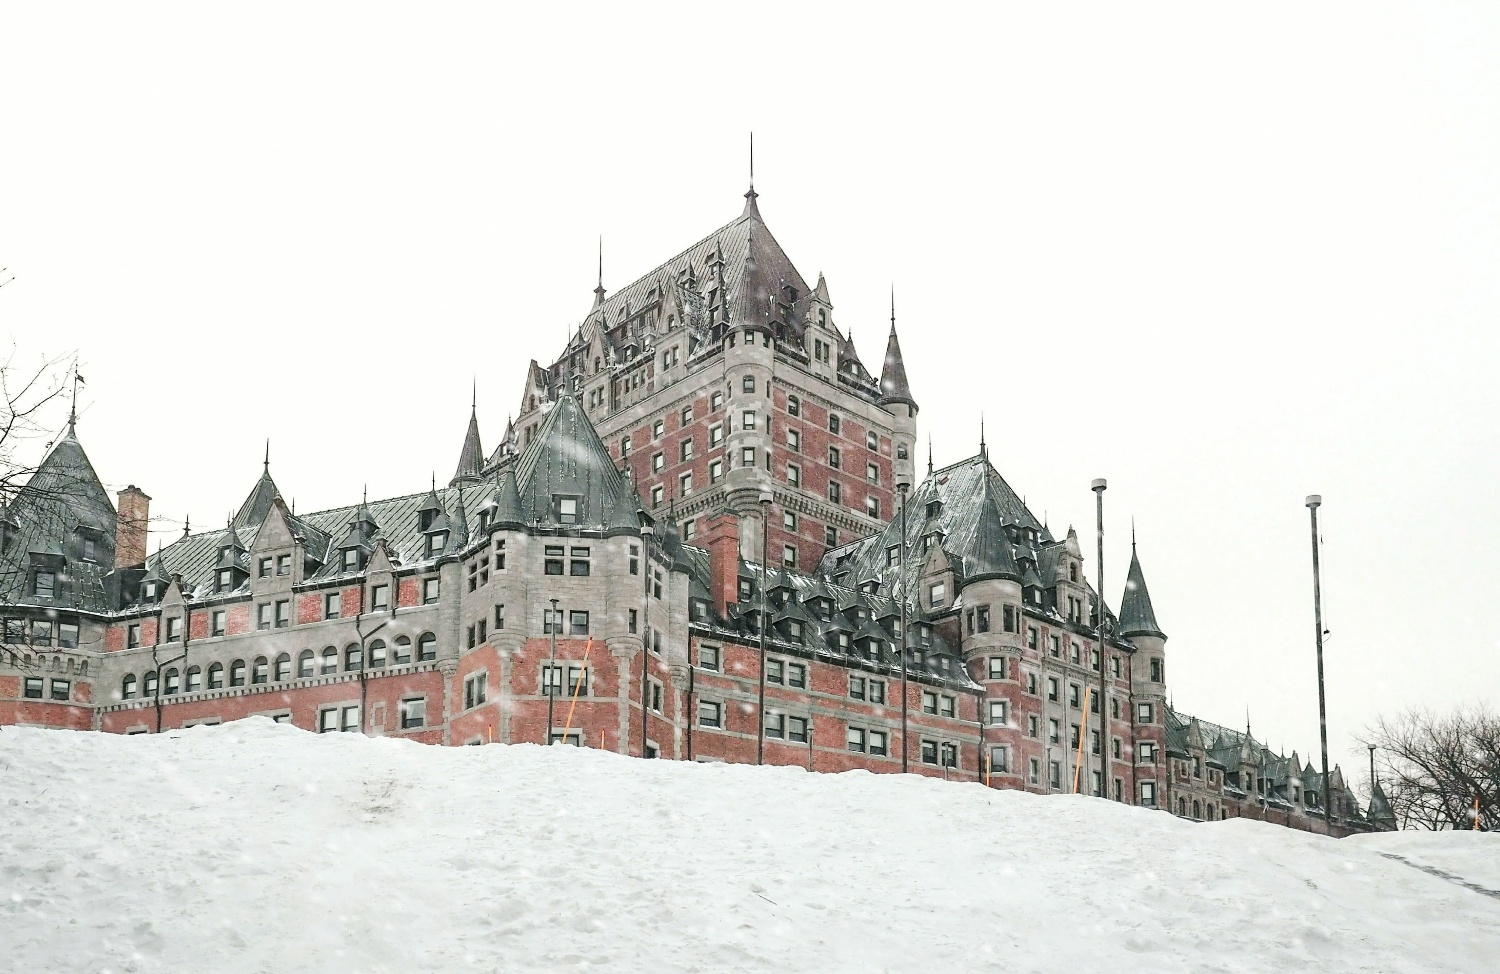 The Chateau Frontenac is not only the most iconic hotel in Quebec, but one of the most photographed hotels in the world! Experience this historic hotel first hand when you travel to Quebec City. #quebec #canada #hotel #castle